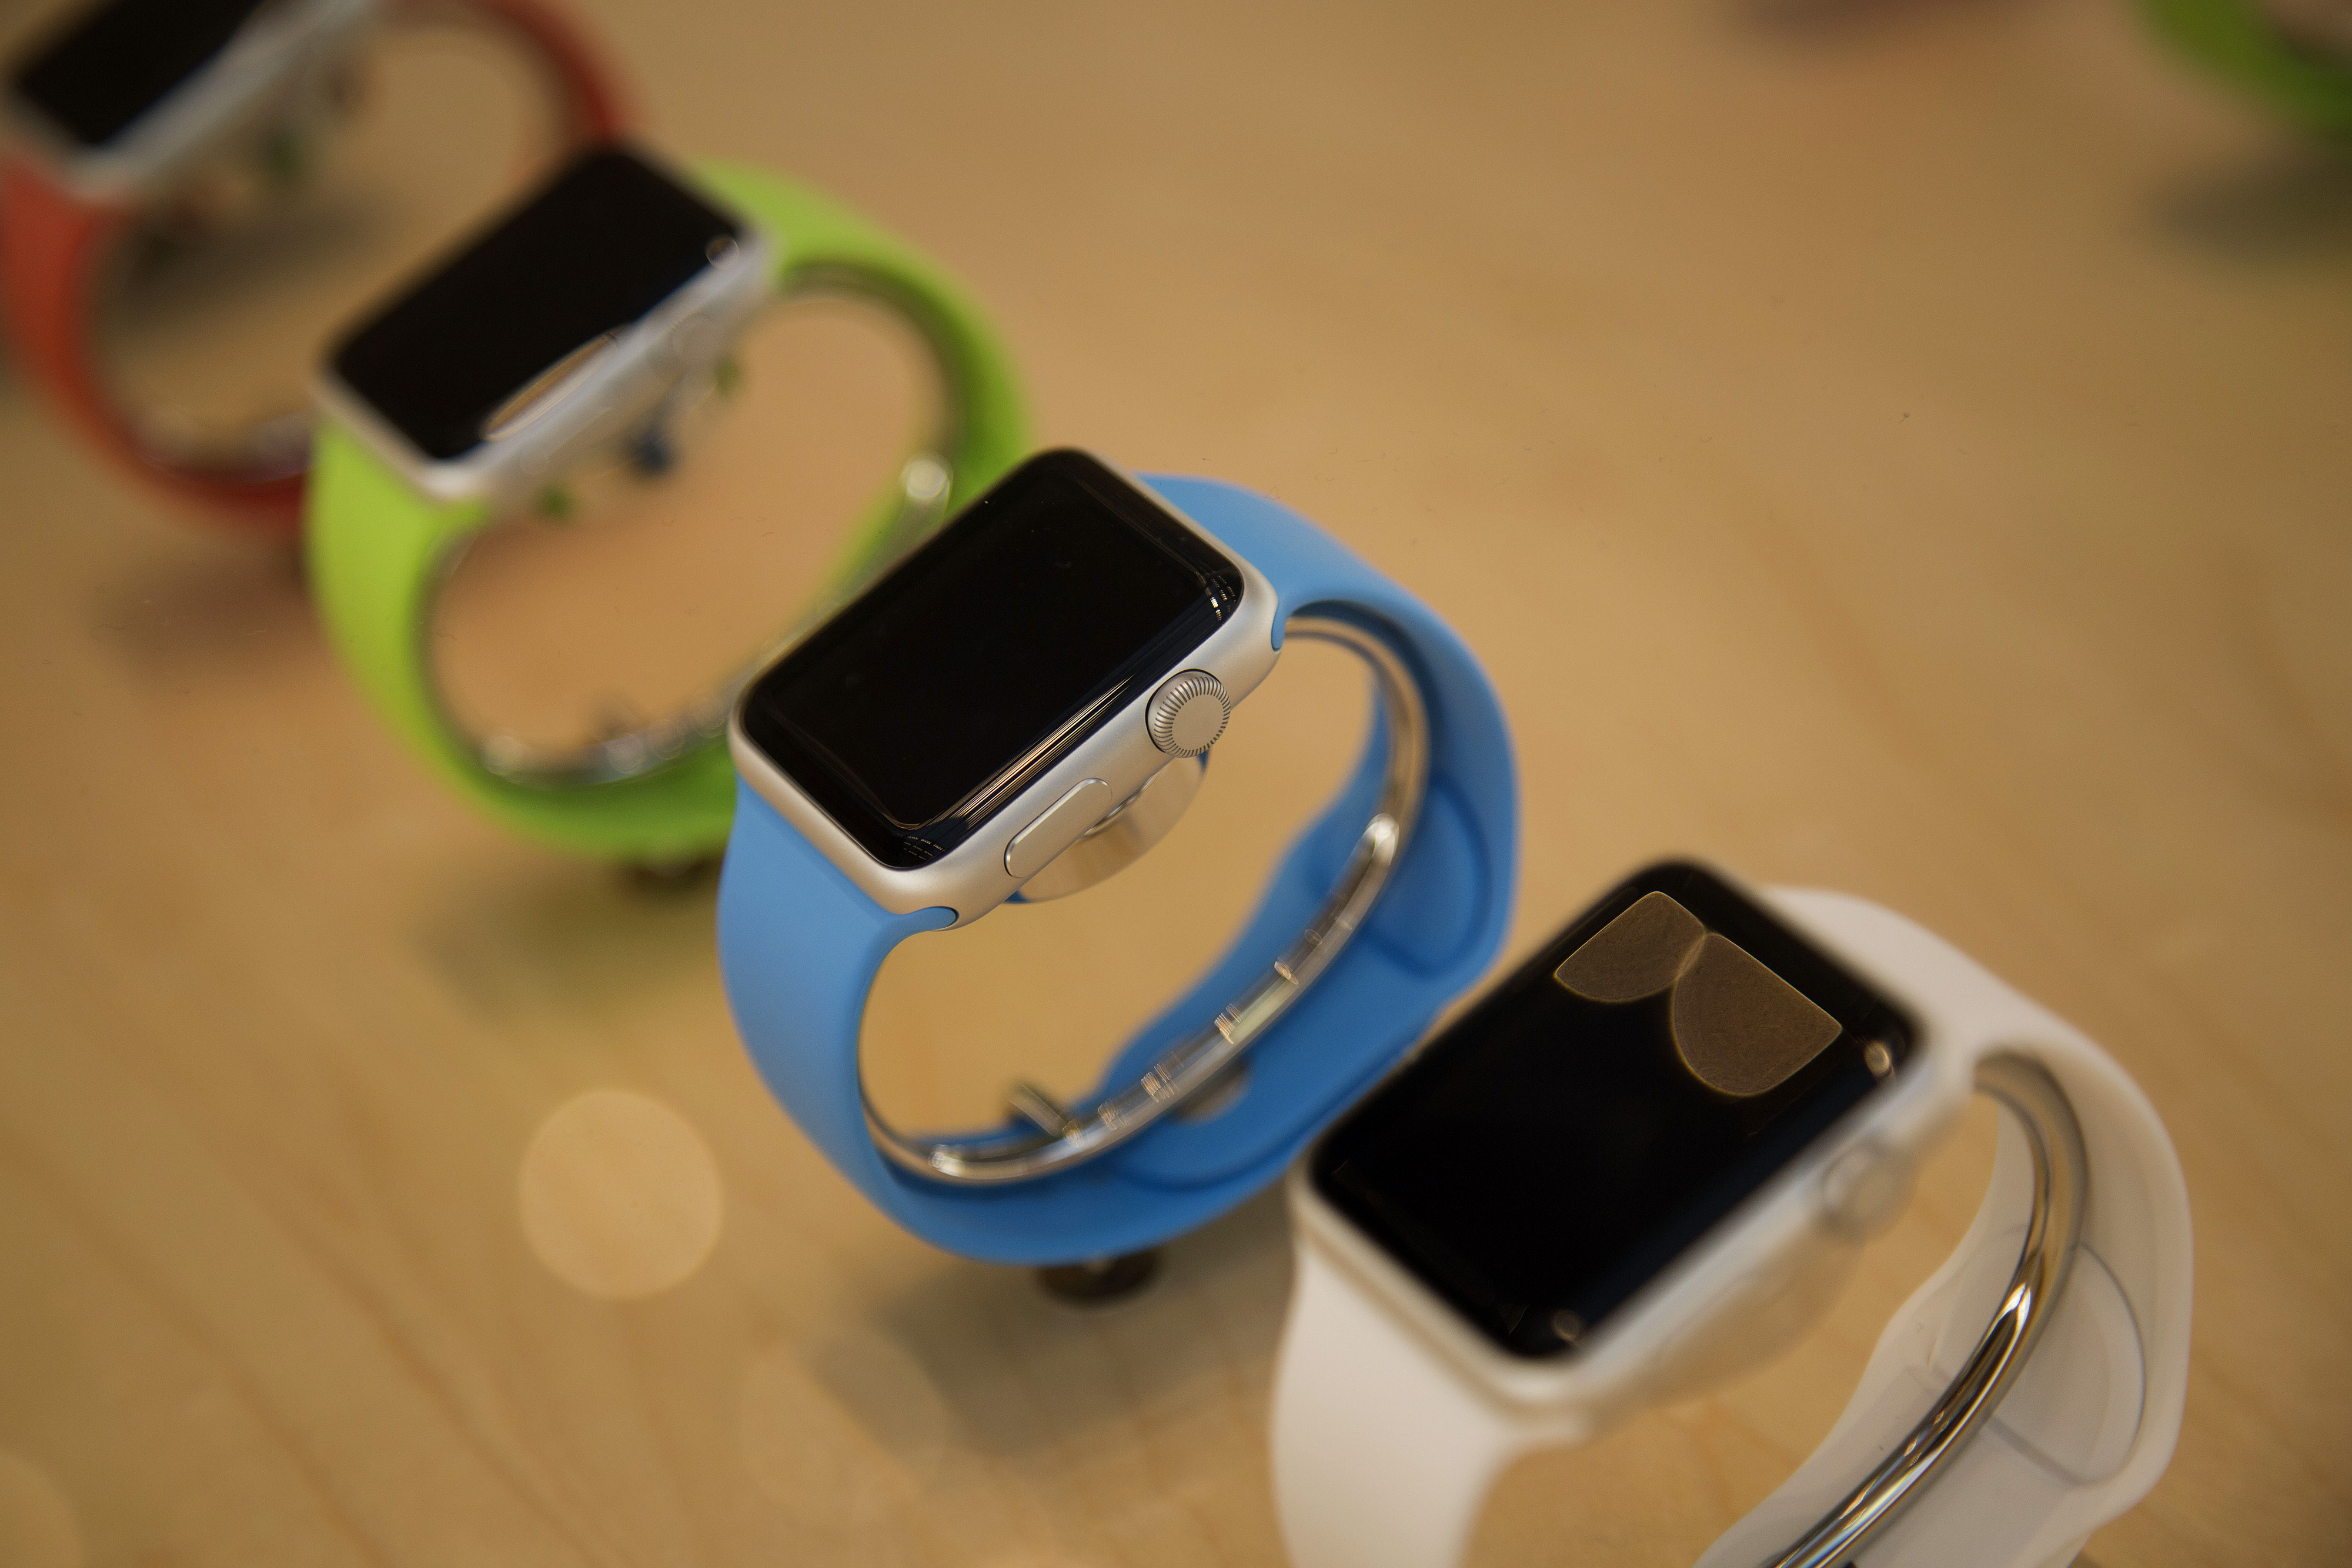 The Apple Watch Sport edition is displayed at an Apple Inc. store in New York, U.S., on Friday, April 10, 2015.